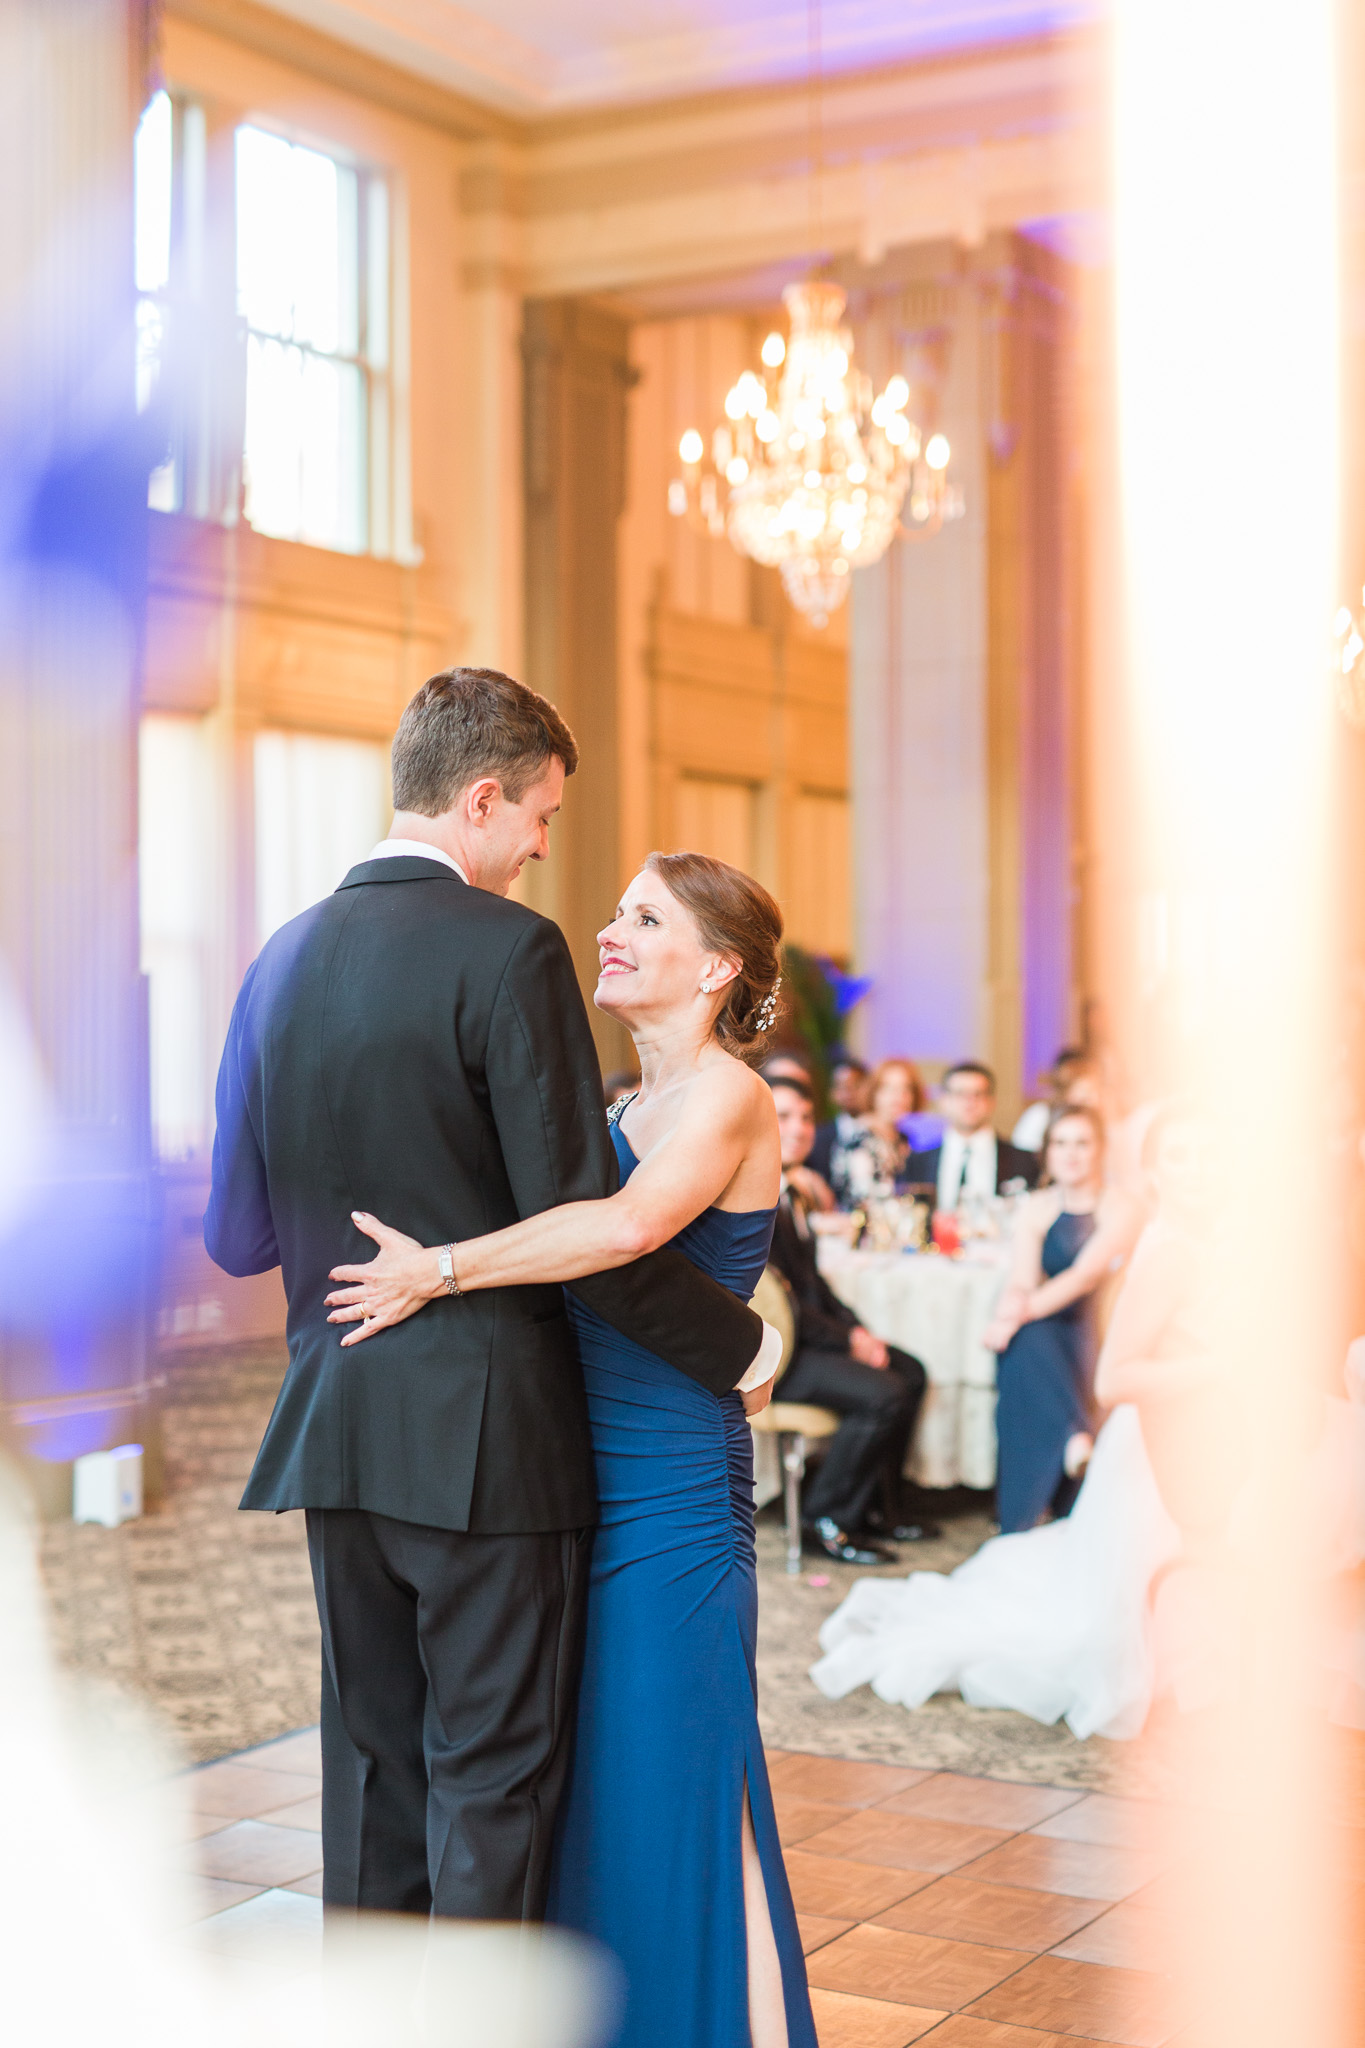 The John Marshall Ballrooms in Richmond, Virginia || Lynchburg, Charlottesville, and Richmond Wedding Photographer || www.ashleyeiban.com